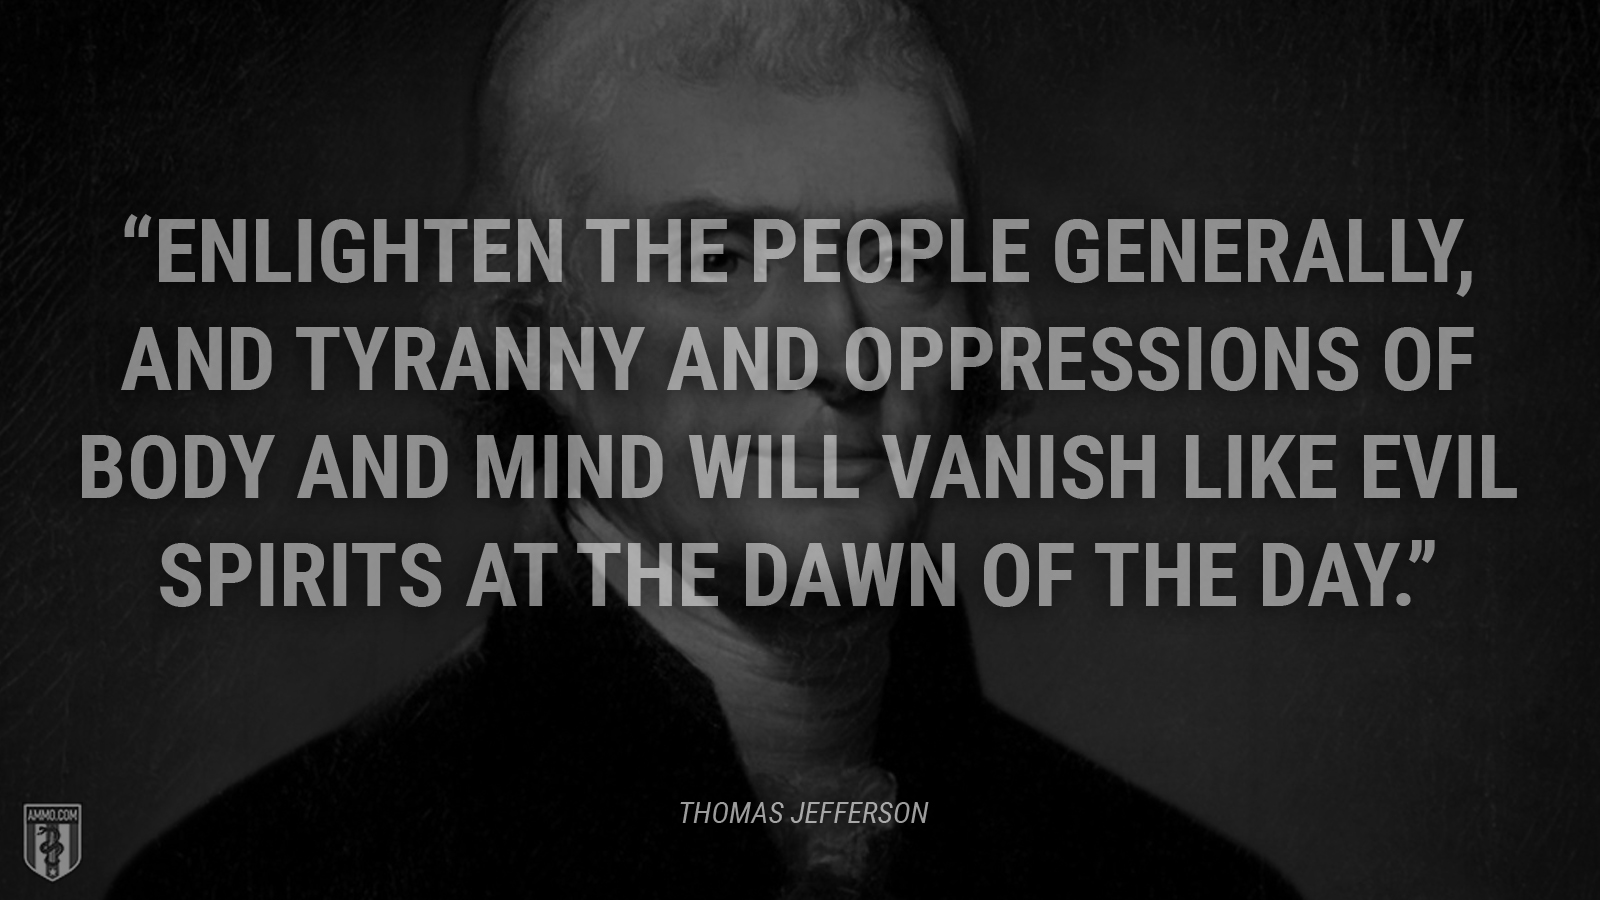 """Enlighten the people generally, and tyranny and oppressions of body and mind will vanish like evil spirits at the dawn of the day."" - Thomas Jefferson"